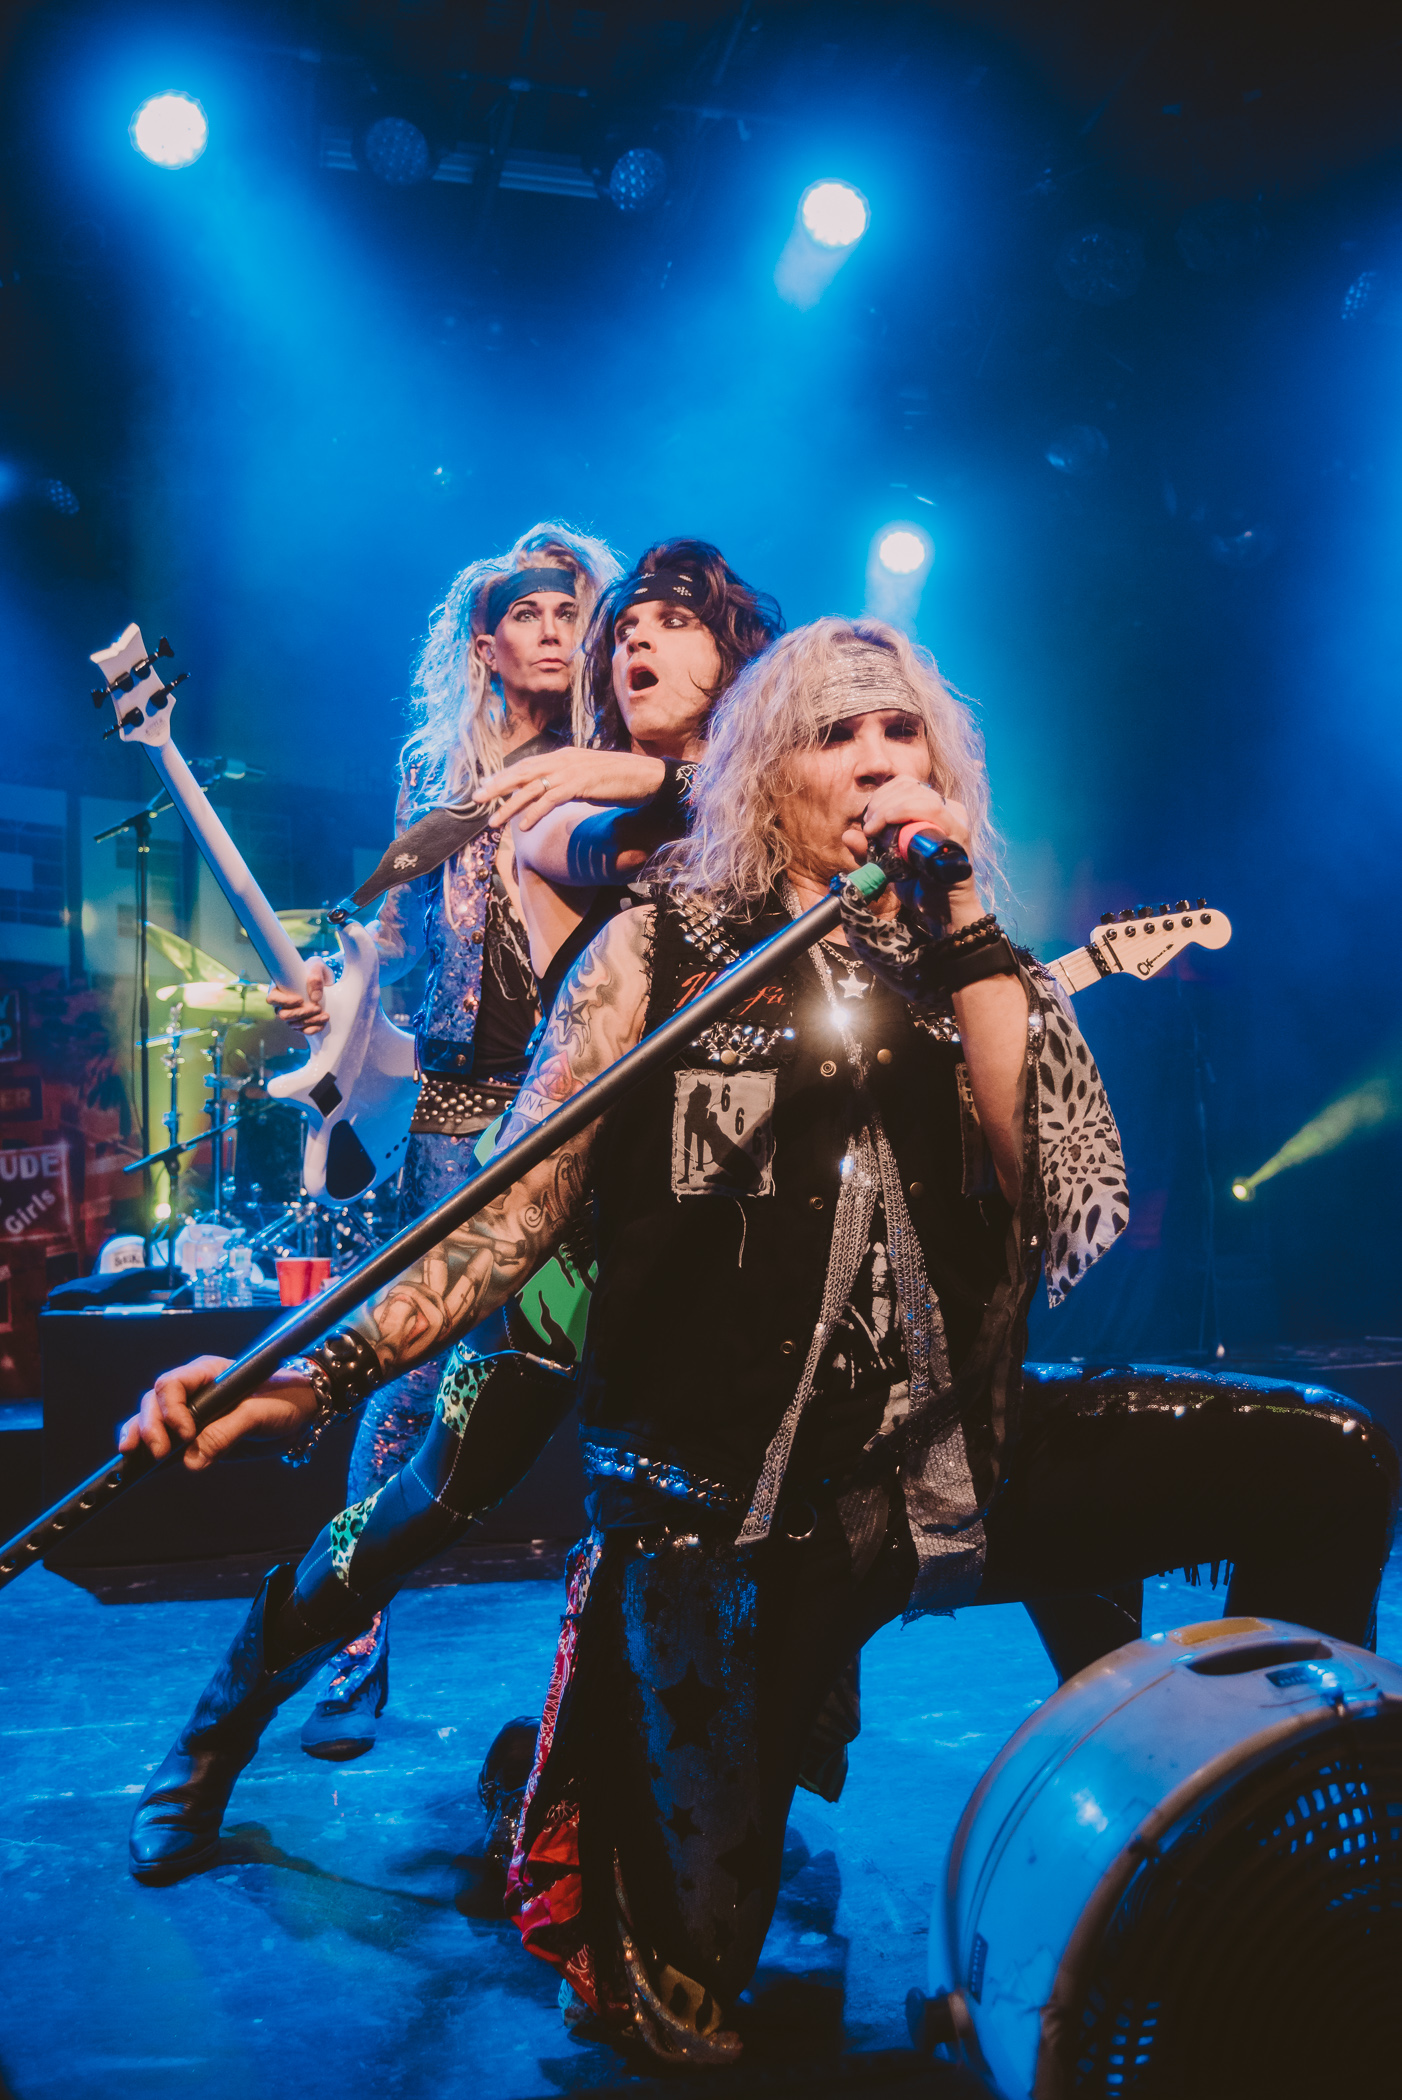 1_Steel_Panther-Commodore-Ballroom-Timothy_Nguyen-20190411 (20 of 21).JPG